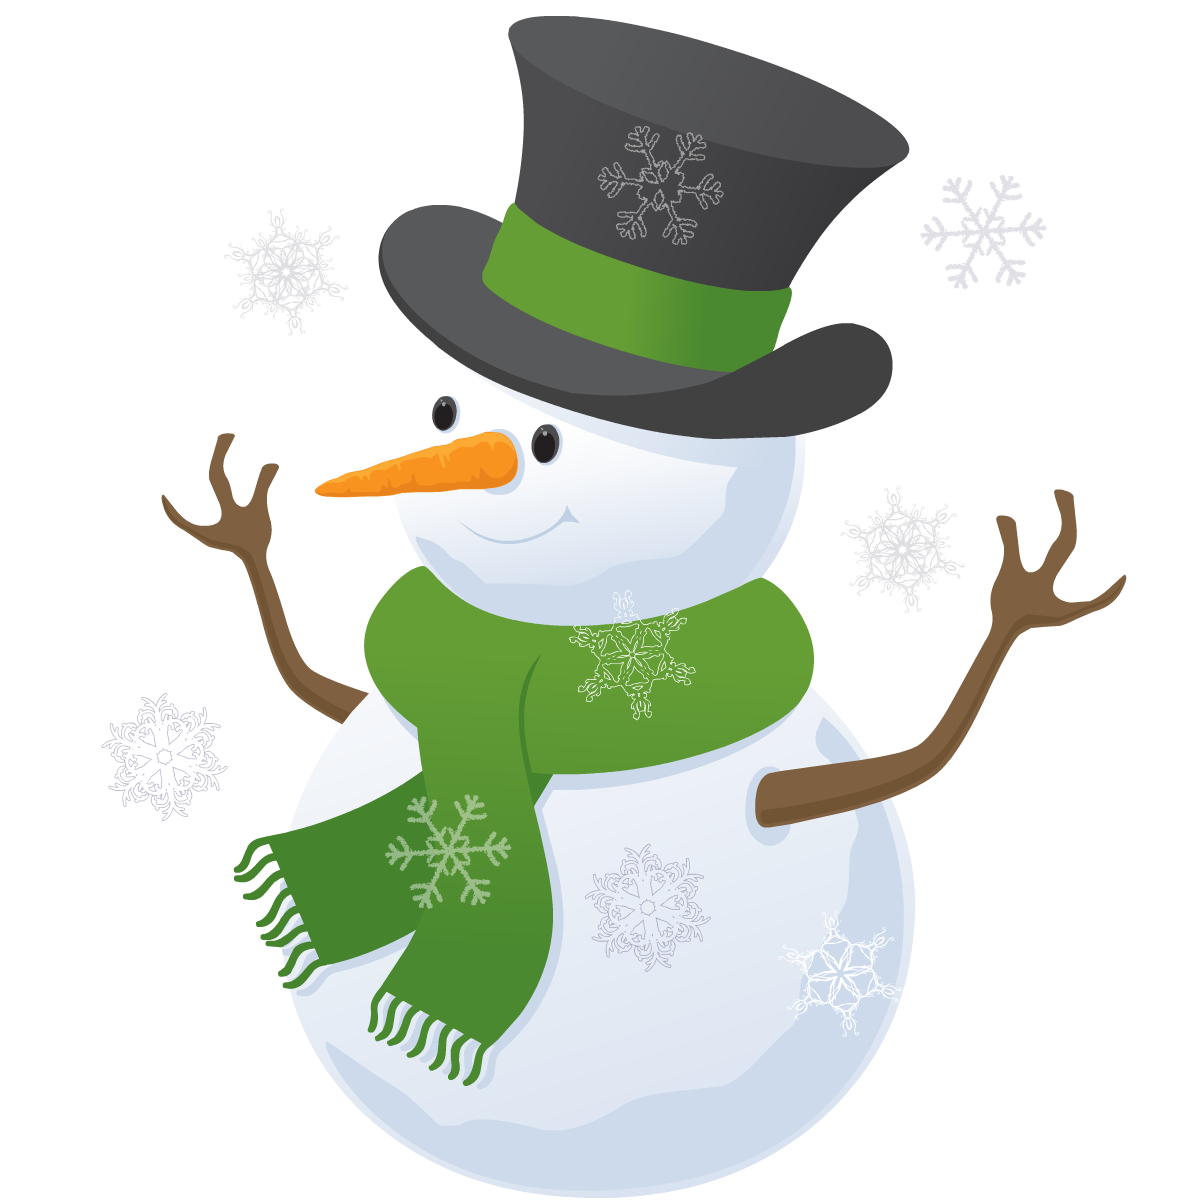 Snowman in top hat.